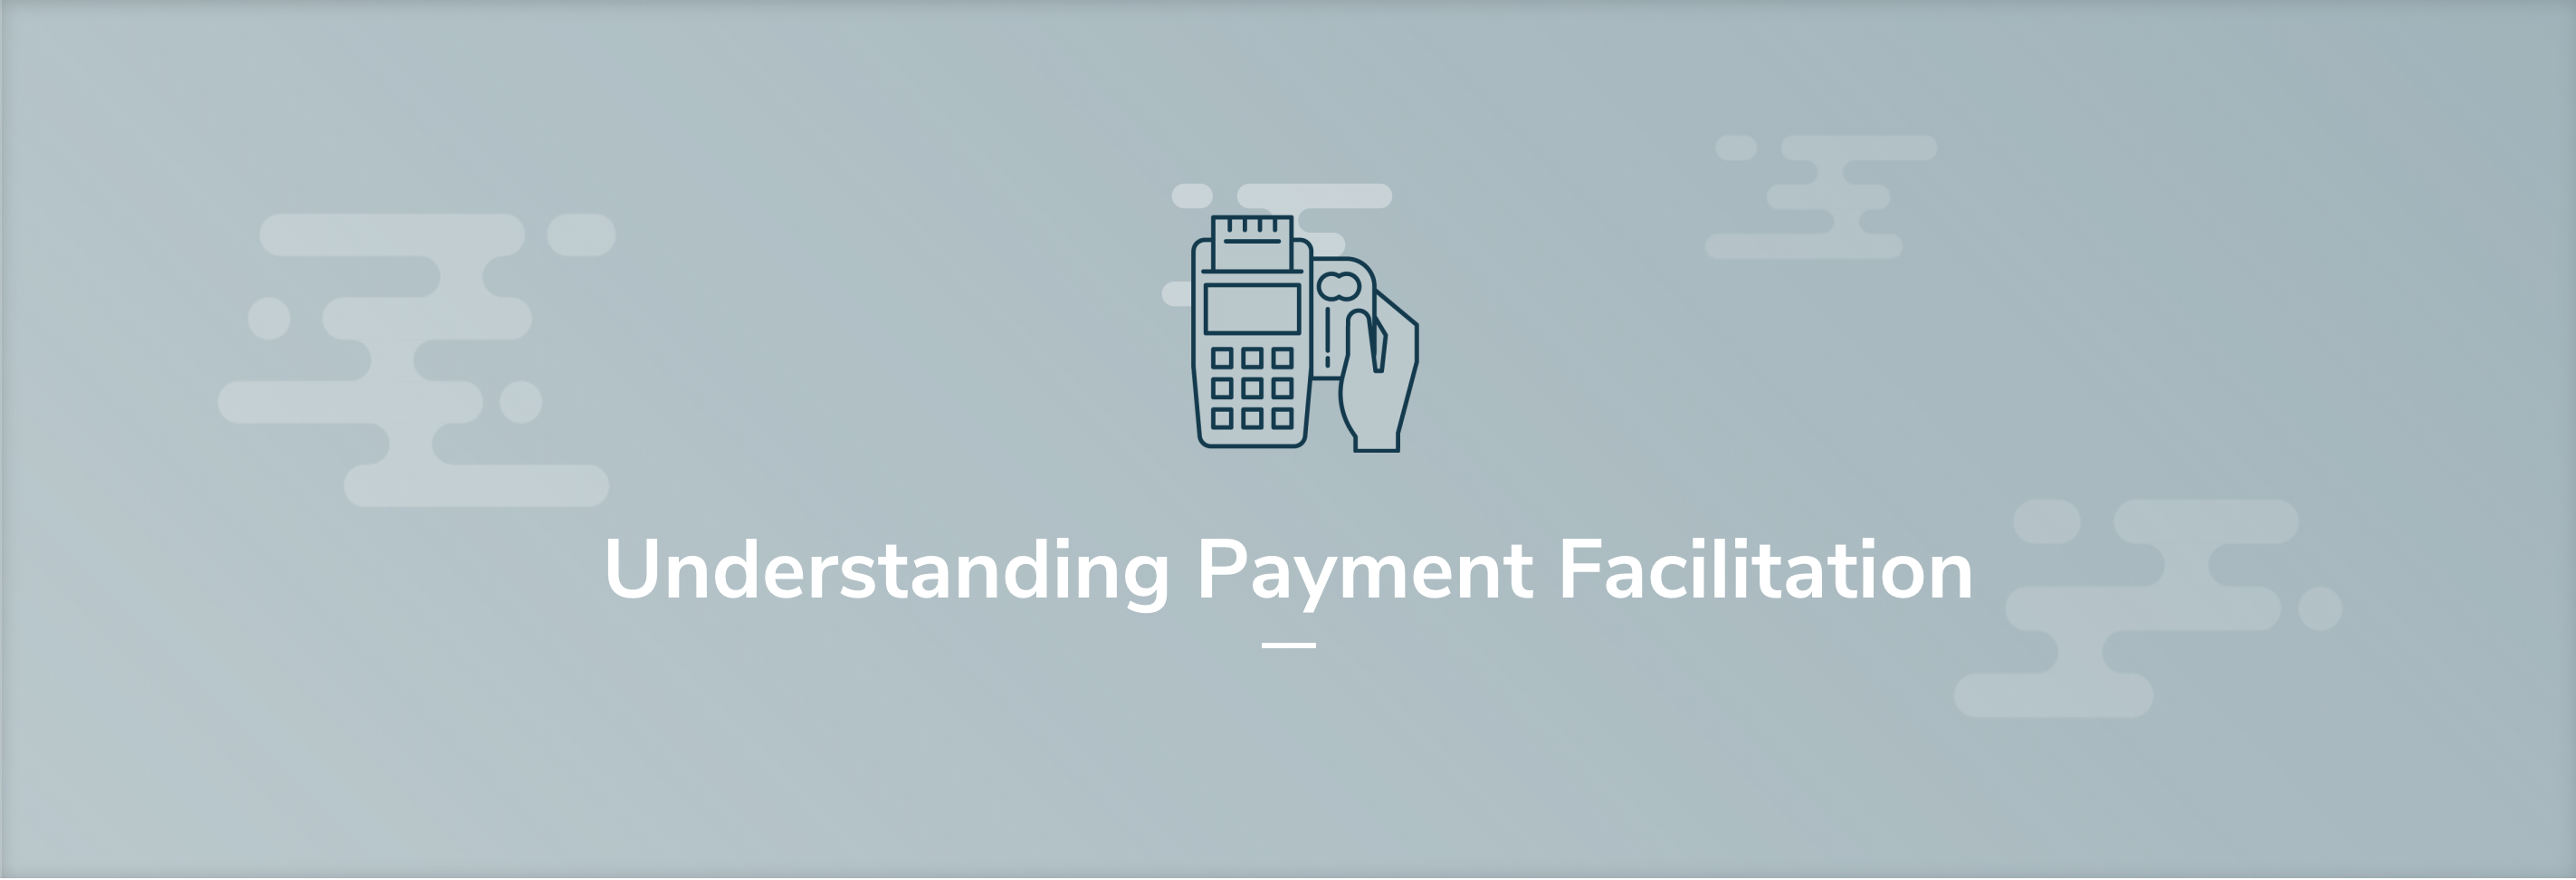 What is a Payment Facilitator?